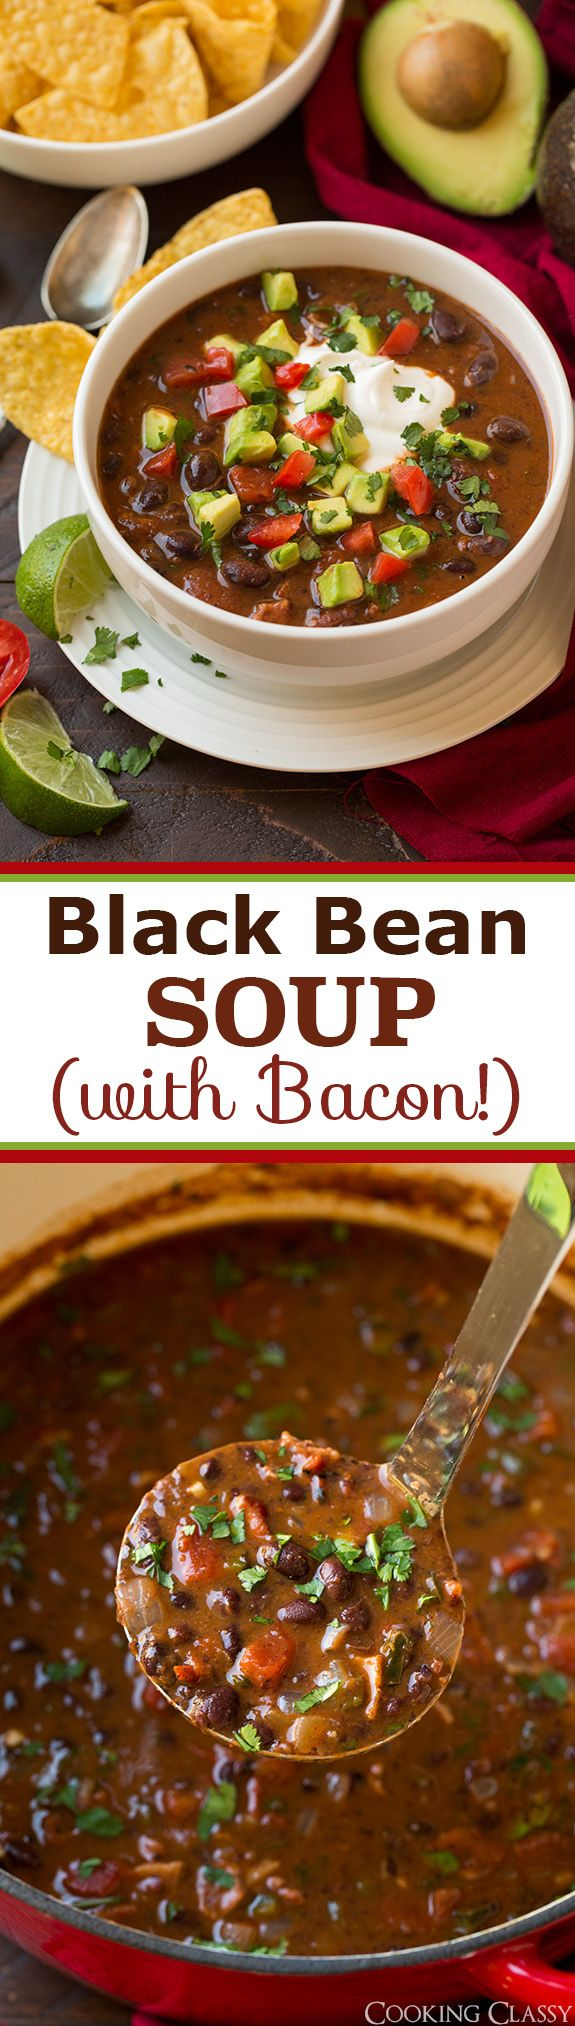 Black Bean Soup - you would think black bean soup is boring but with the addition of bacon and avocado this is anything but! We've made this twice in the last week!